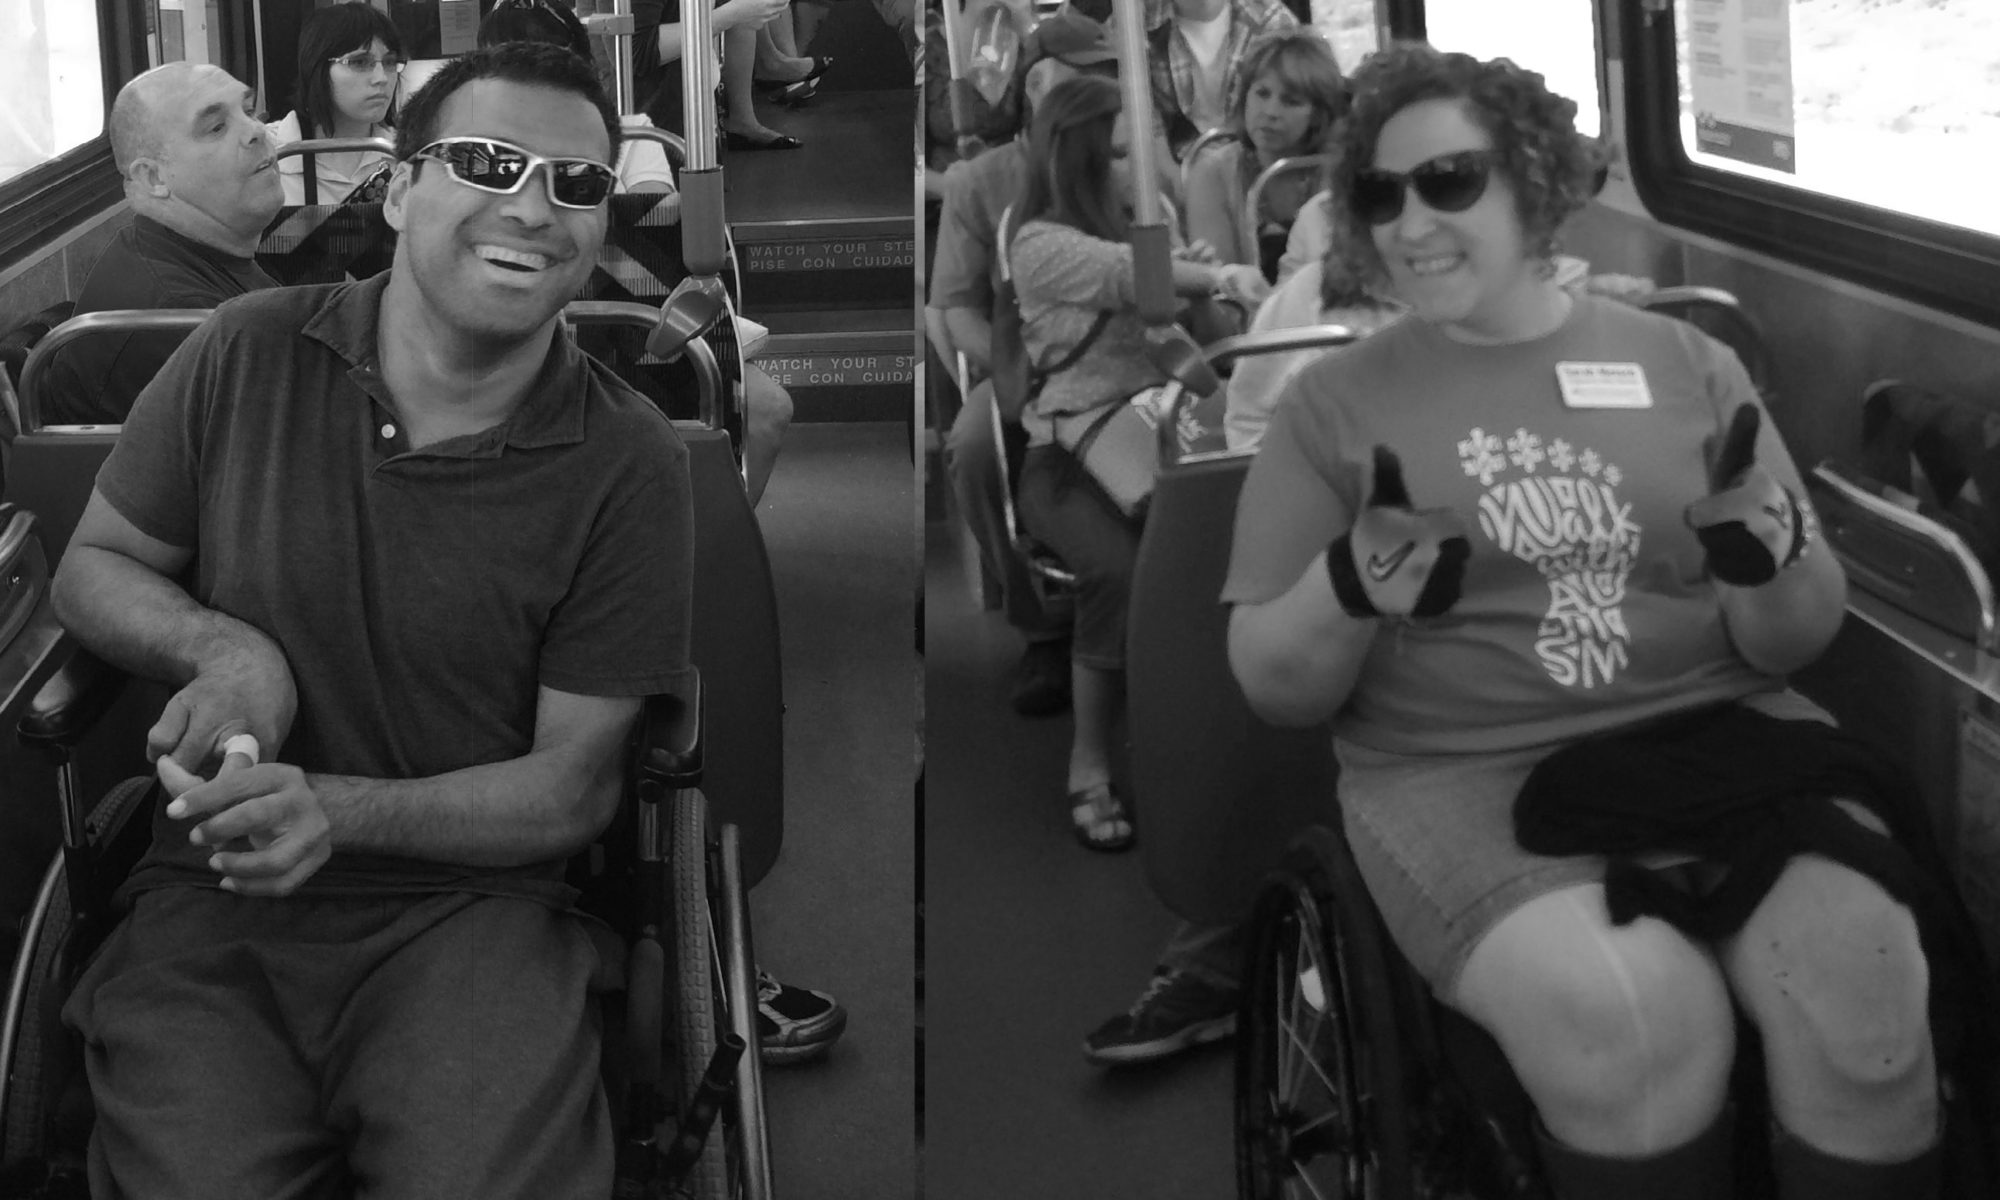 Two passengers sitting on their wheelchairs inside a bus